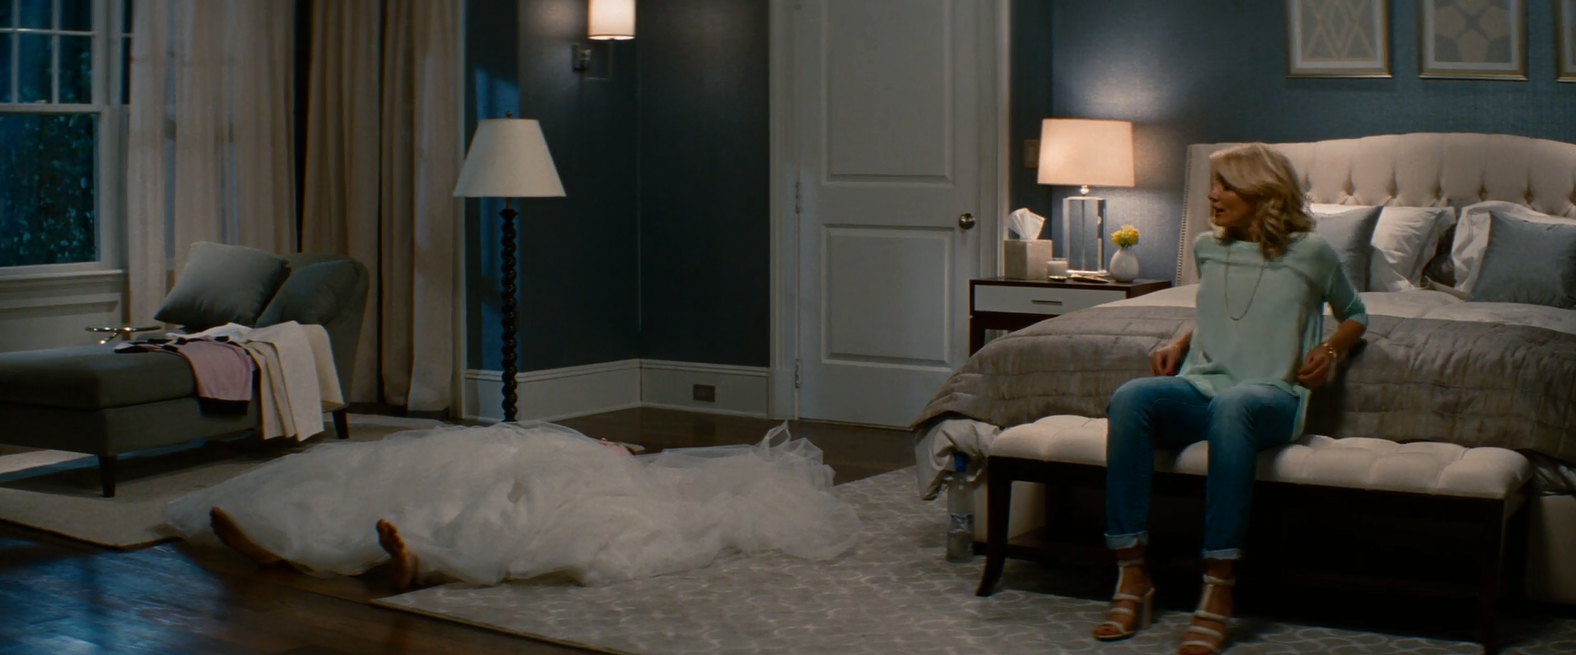 The Other Woman - Bedroom (movies)